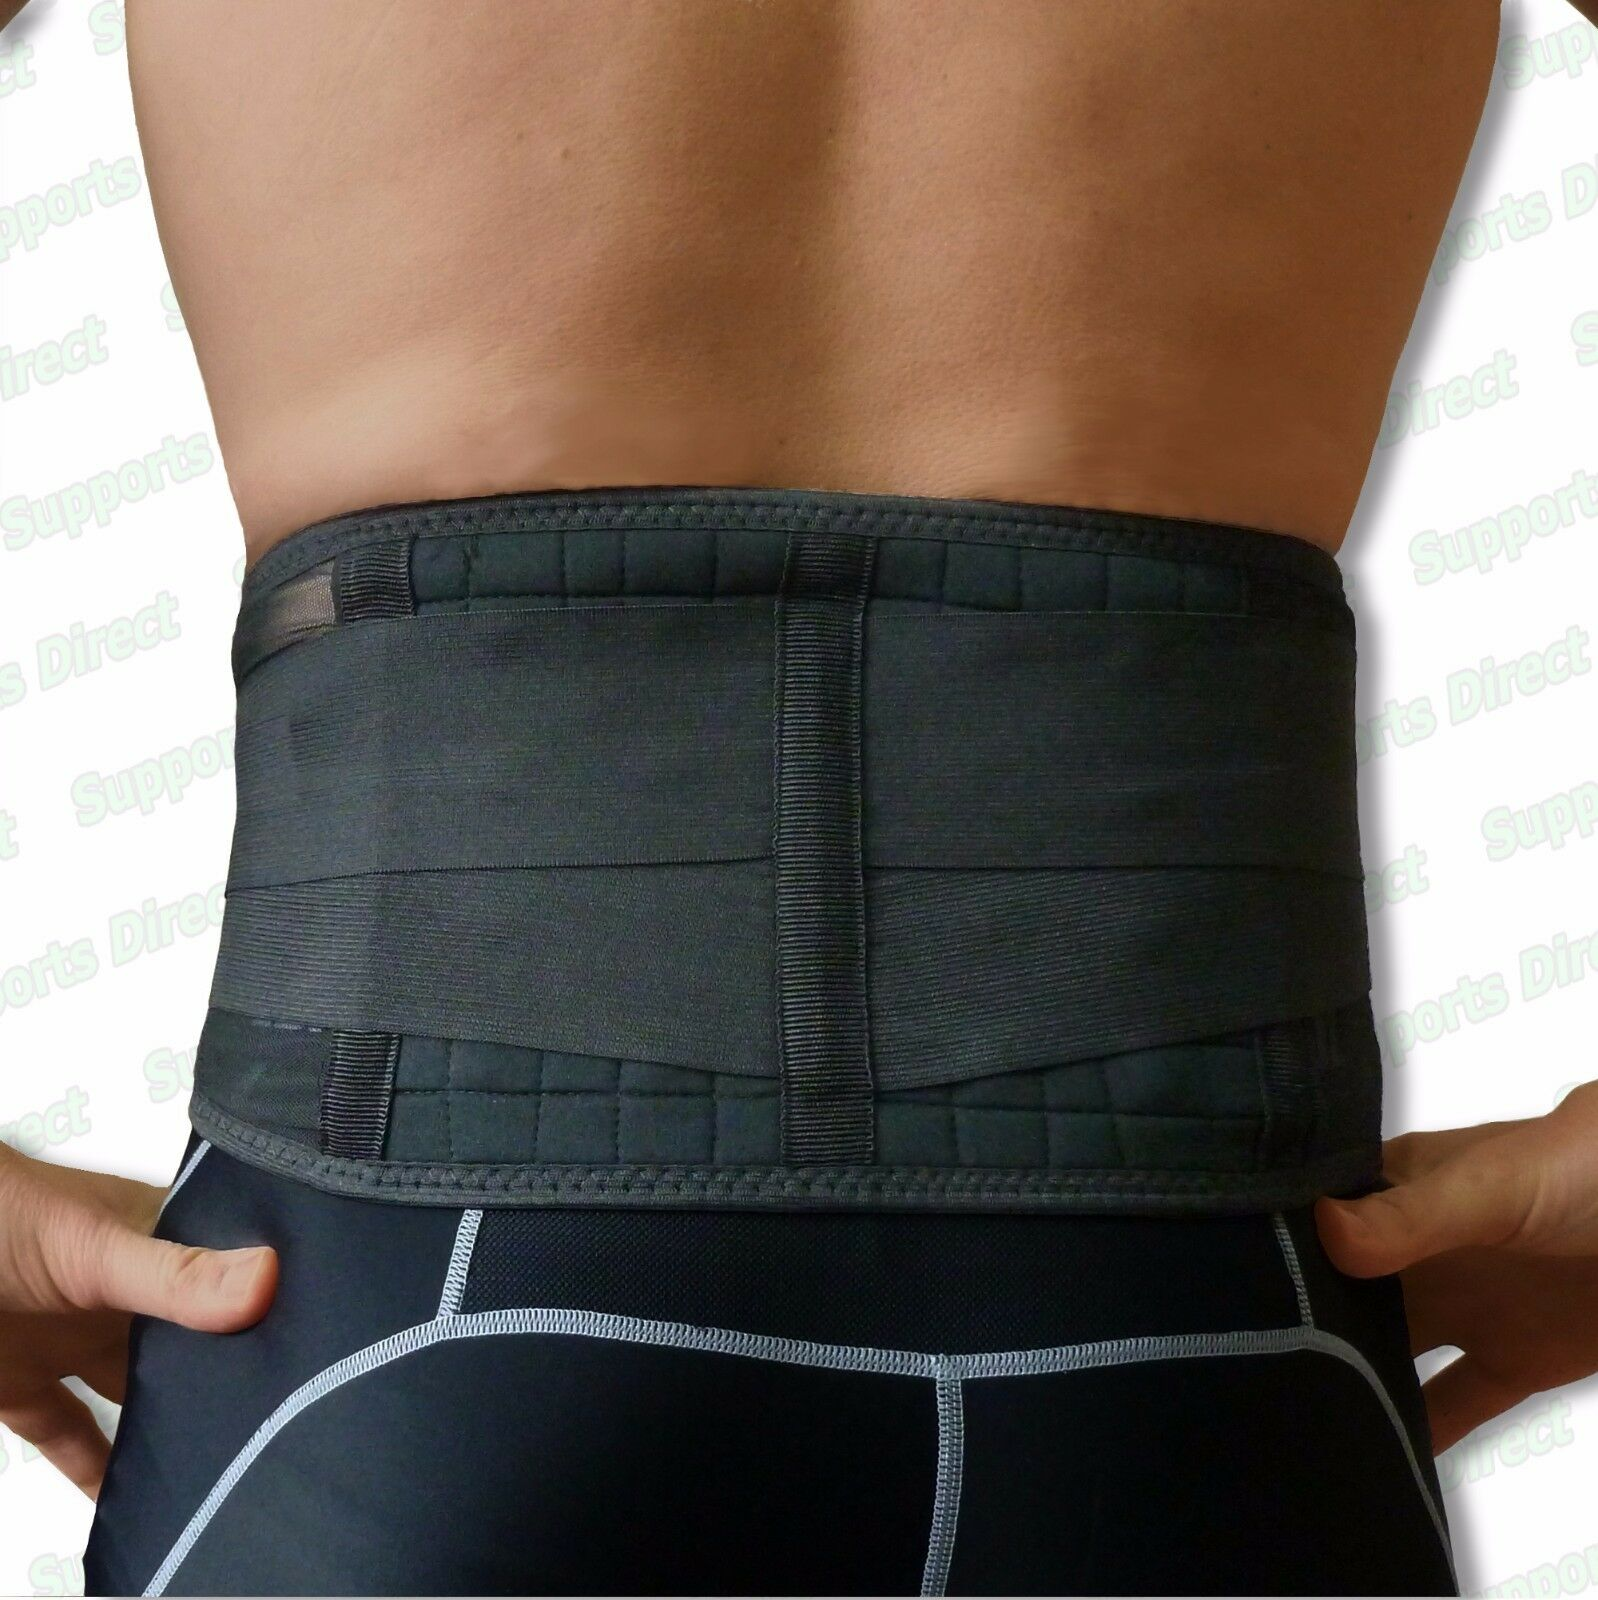 Magnetic Back Support 20 Pain Relief Magnets Lower Lumbar Brace Belt Strap £7.99 @ eBay